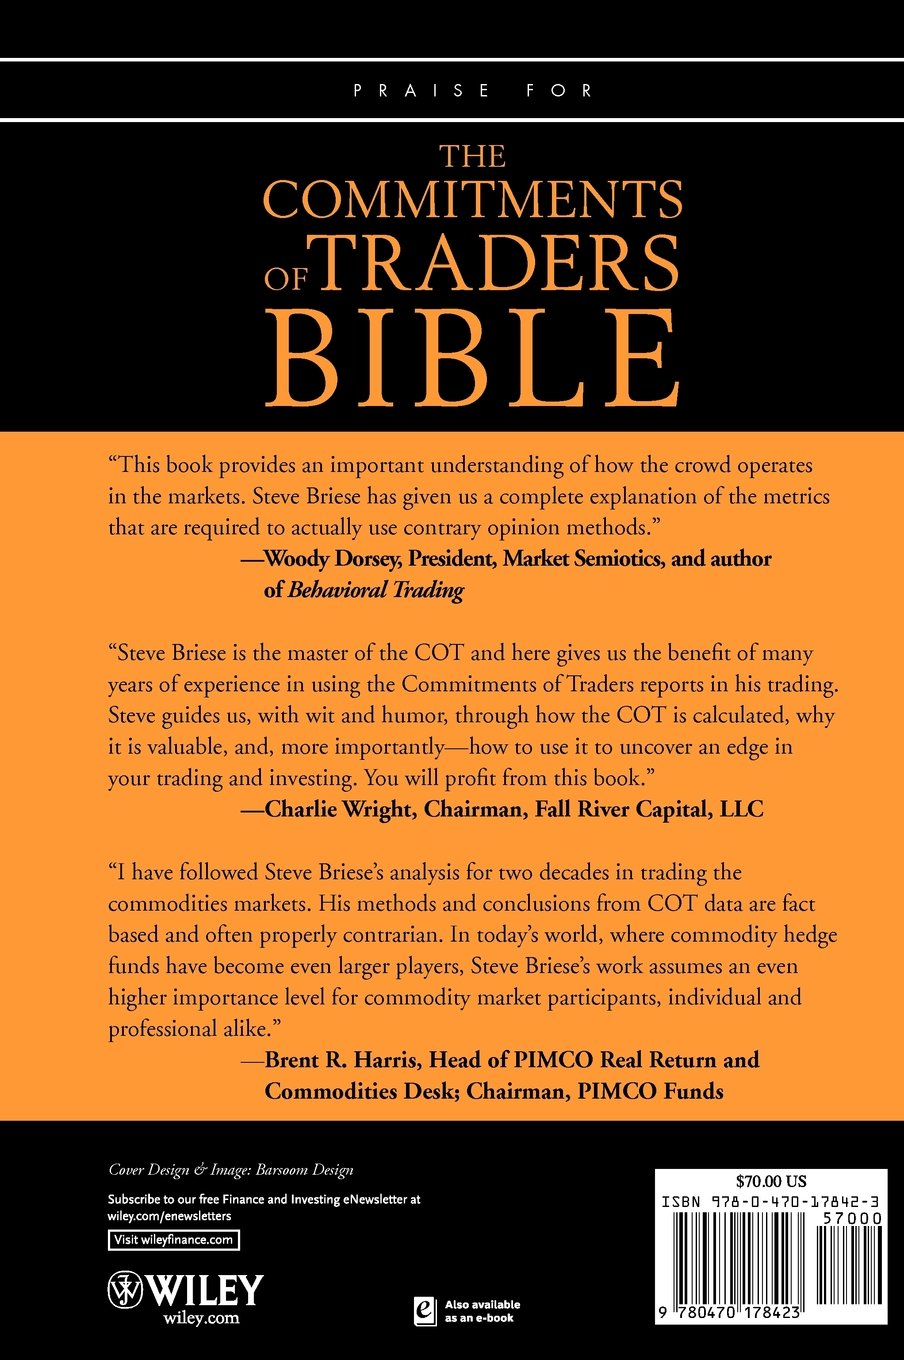 The Commitments of Traders Bible: How To Profit from Insider Market Intelligence by Wiley